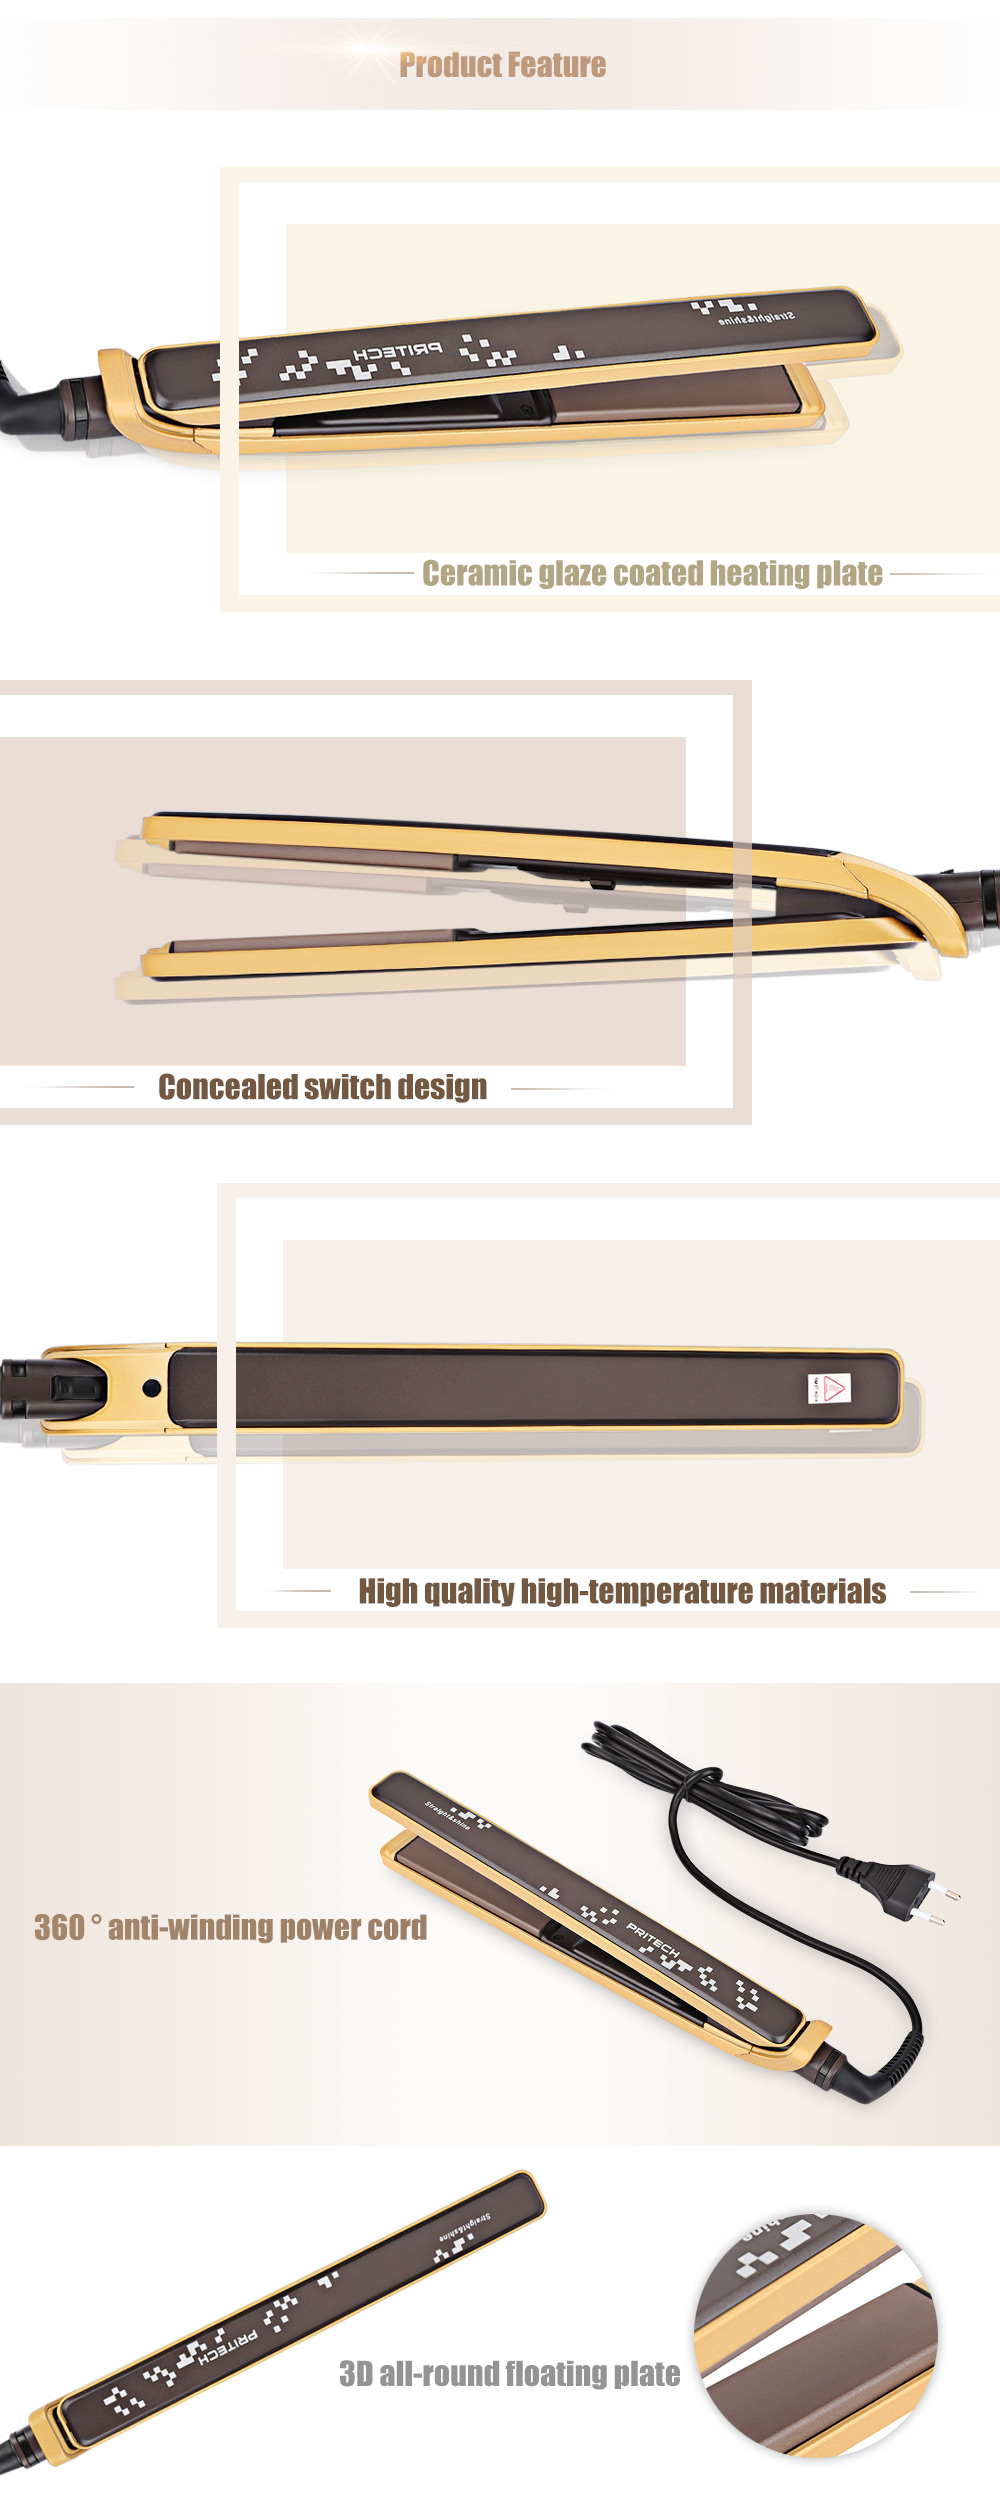 PRITECH TA - 2192 Hairstyle Portable Electronic Ceramic Hair Roll Straight Dual-use Straightener